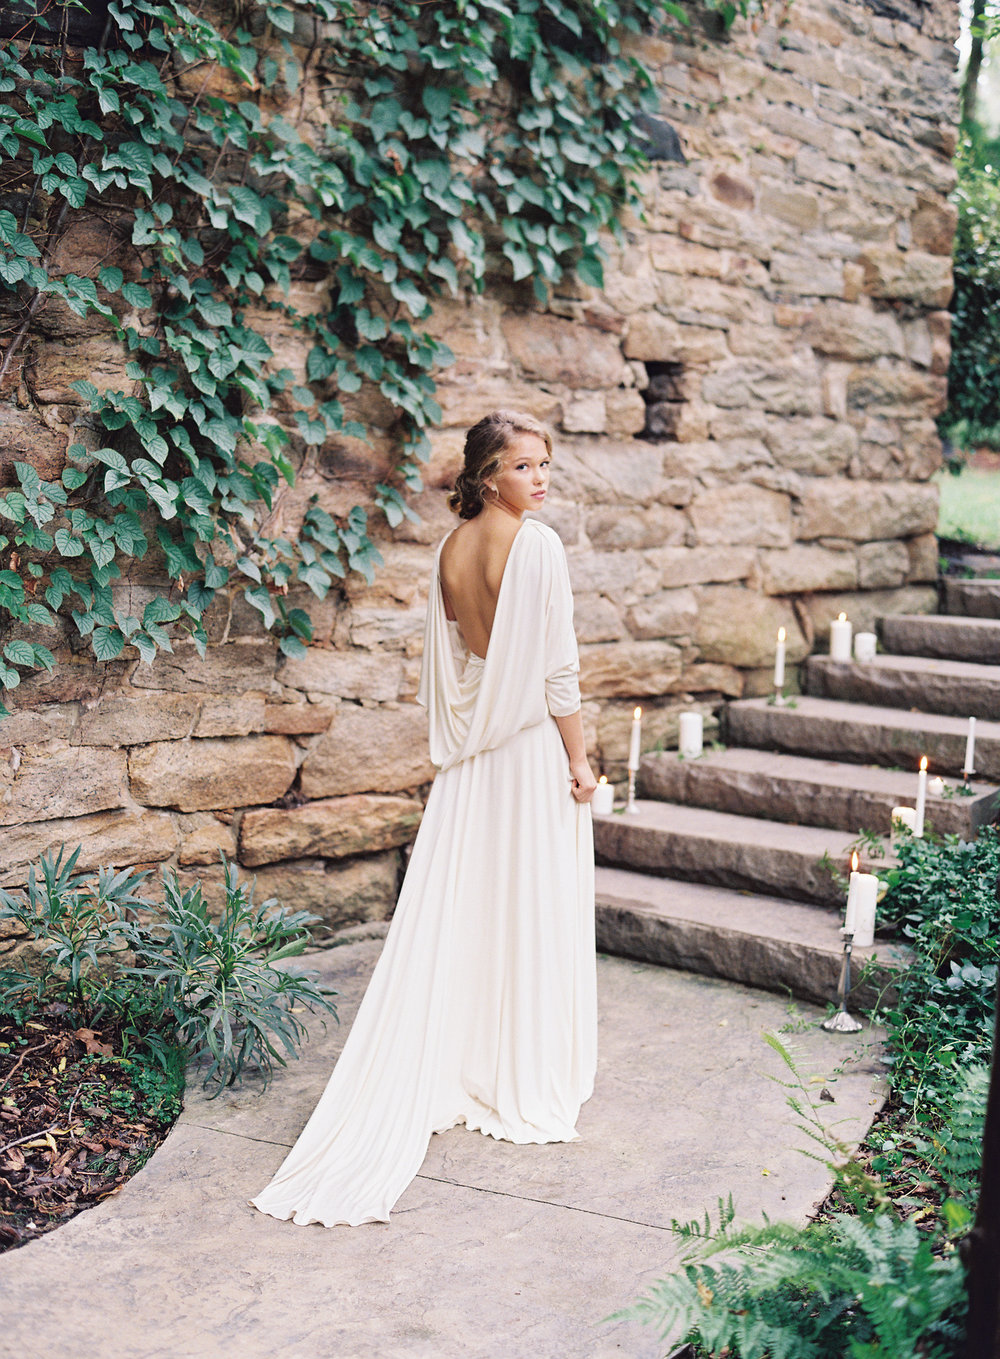 Autumn Wedding Inspiration at the Mill at Fine Creek by Richmond Virginia Wedding Planner East Made Event Company and Michael and Carina Photography11.jpg